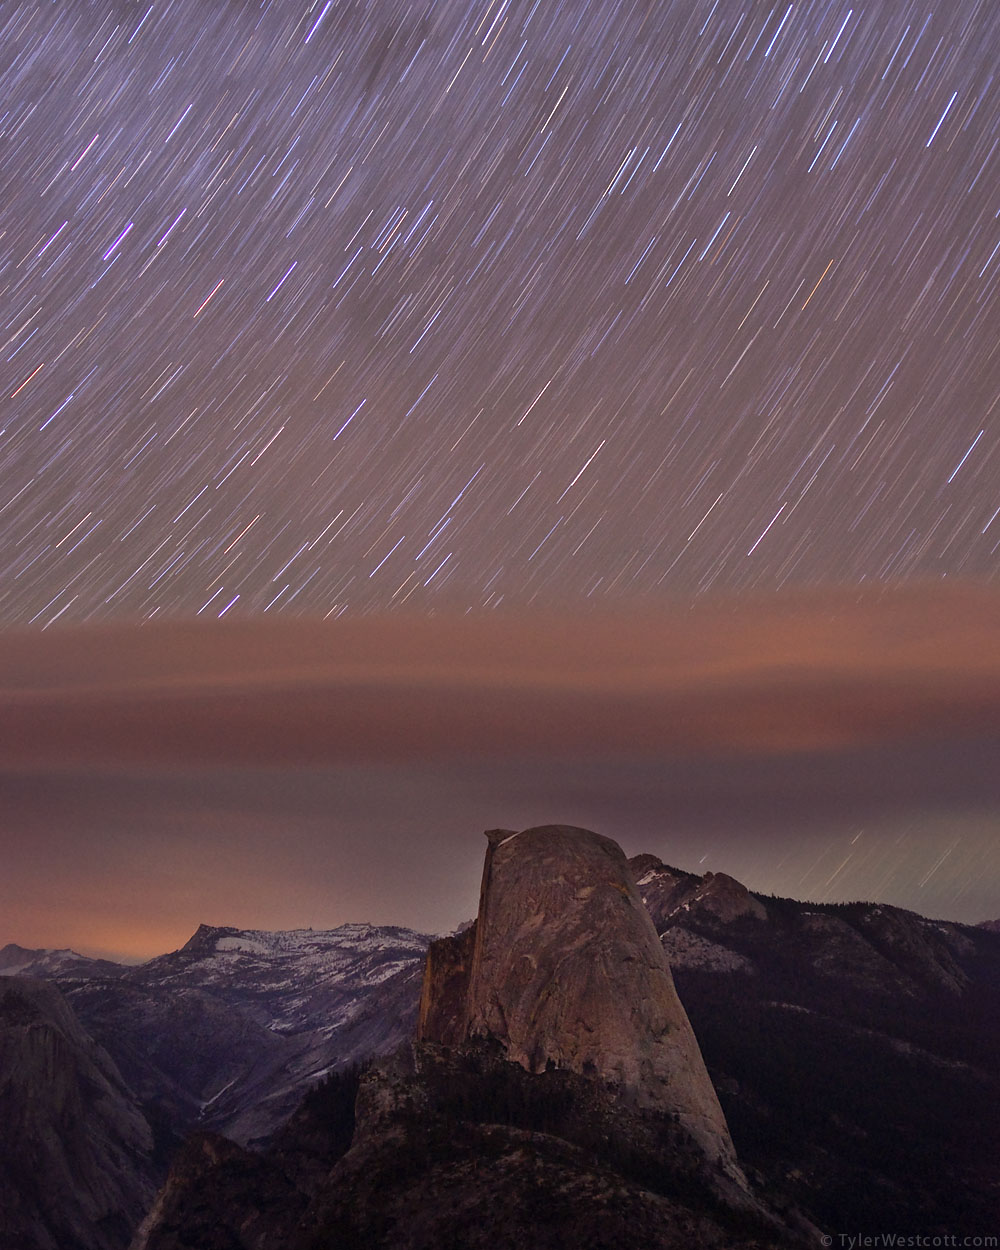 Midnight Sky over Half Dome, Yosemite National Park